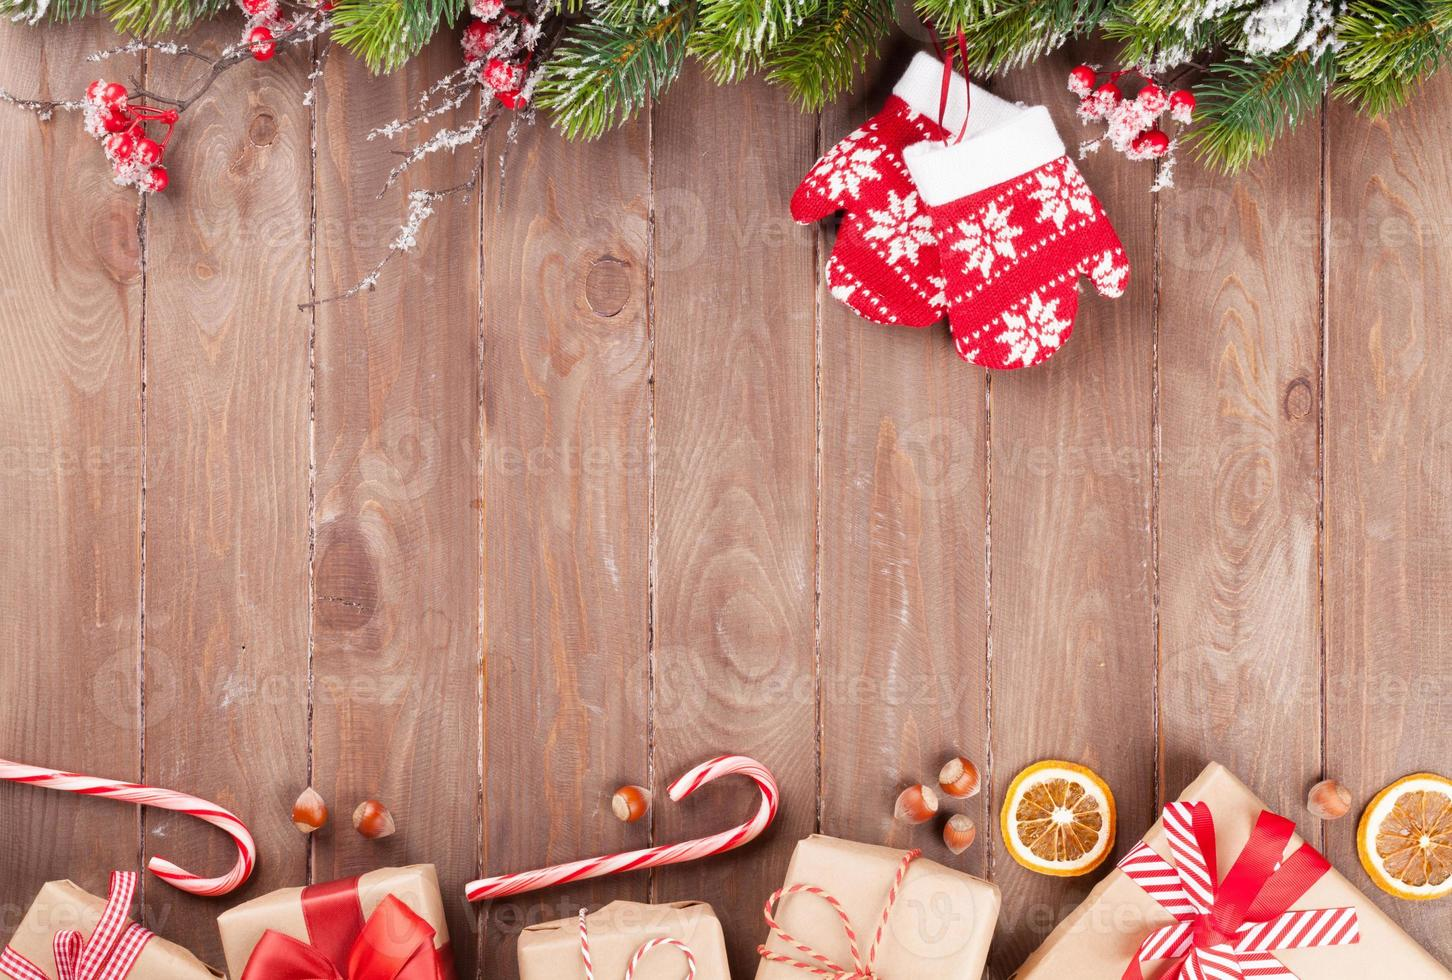 Christmas background with fir tree and gift boxes photo